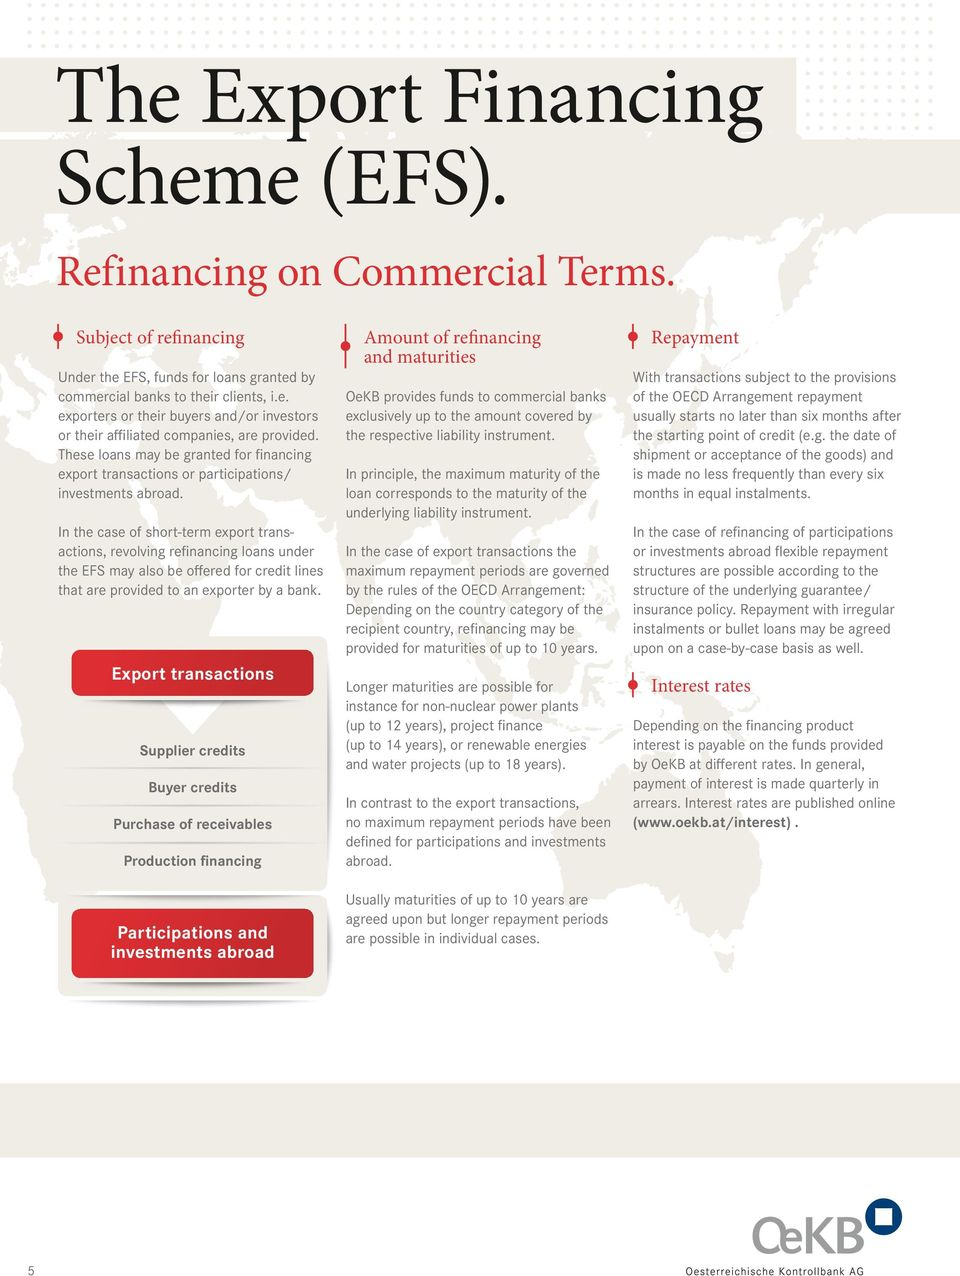 In the case of short-term export transactions, revolving refinancing loans under the EFS may also be offered for credit lines that are provided to an exporter by a bank.